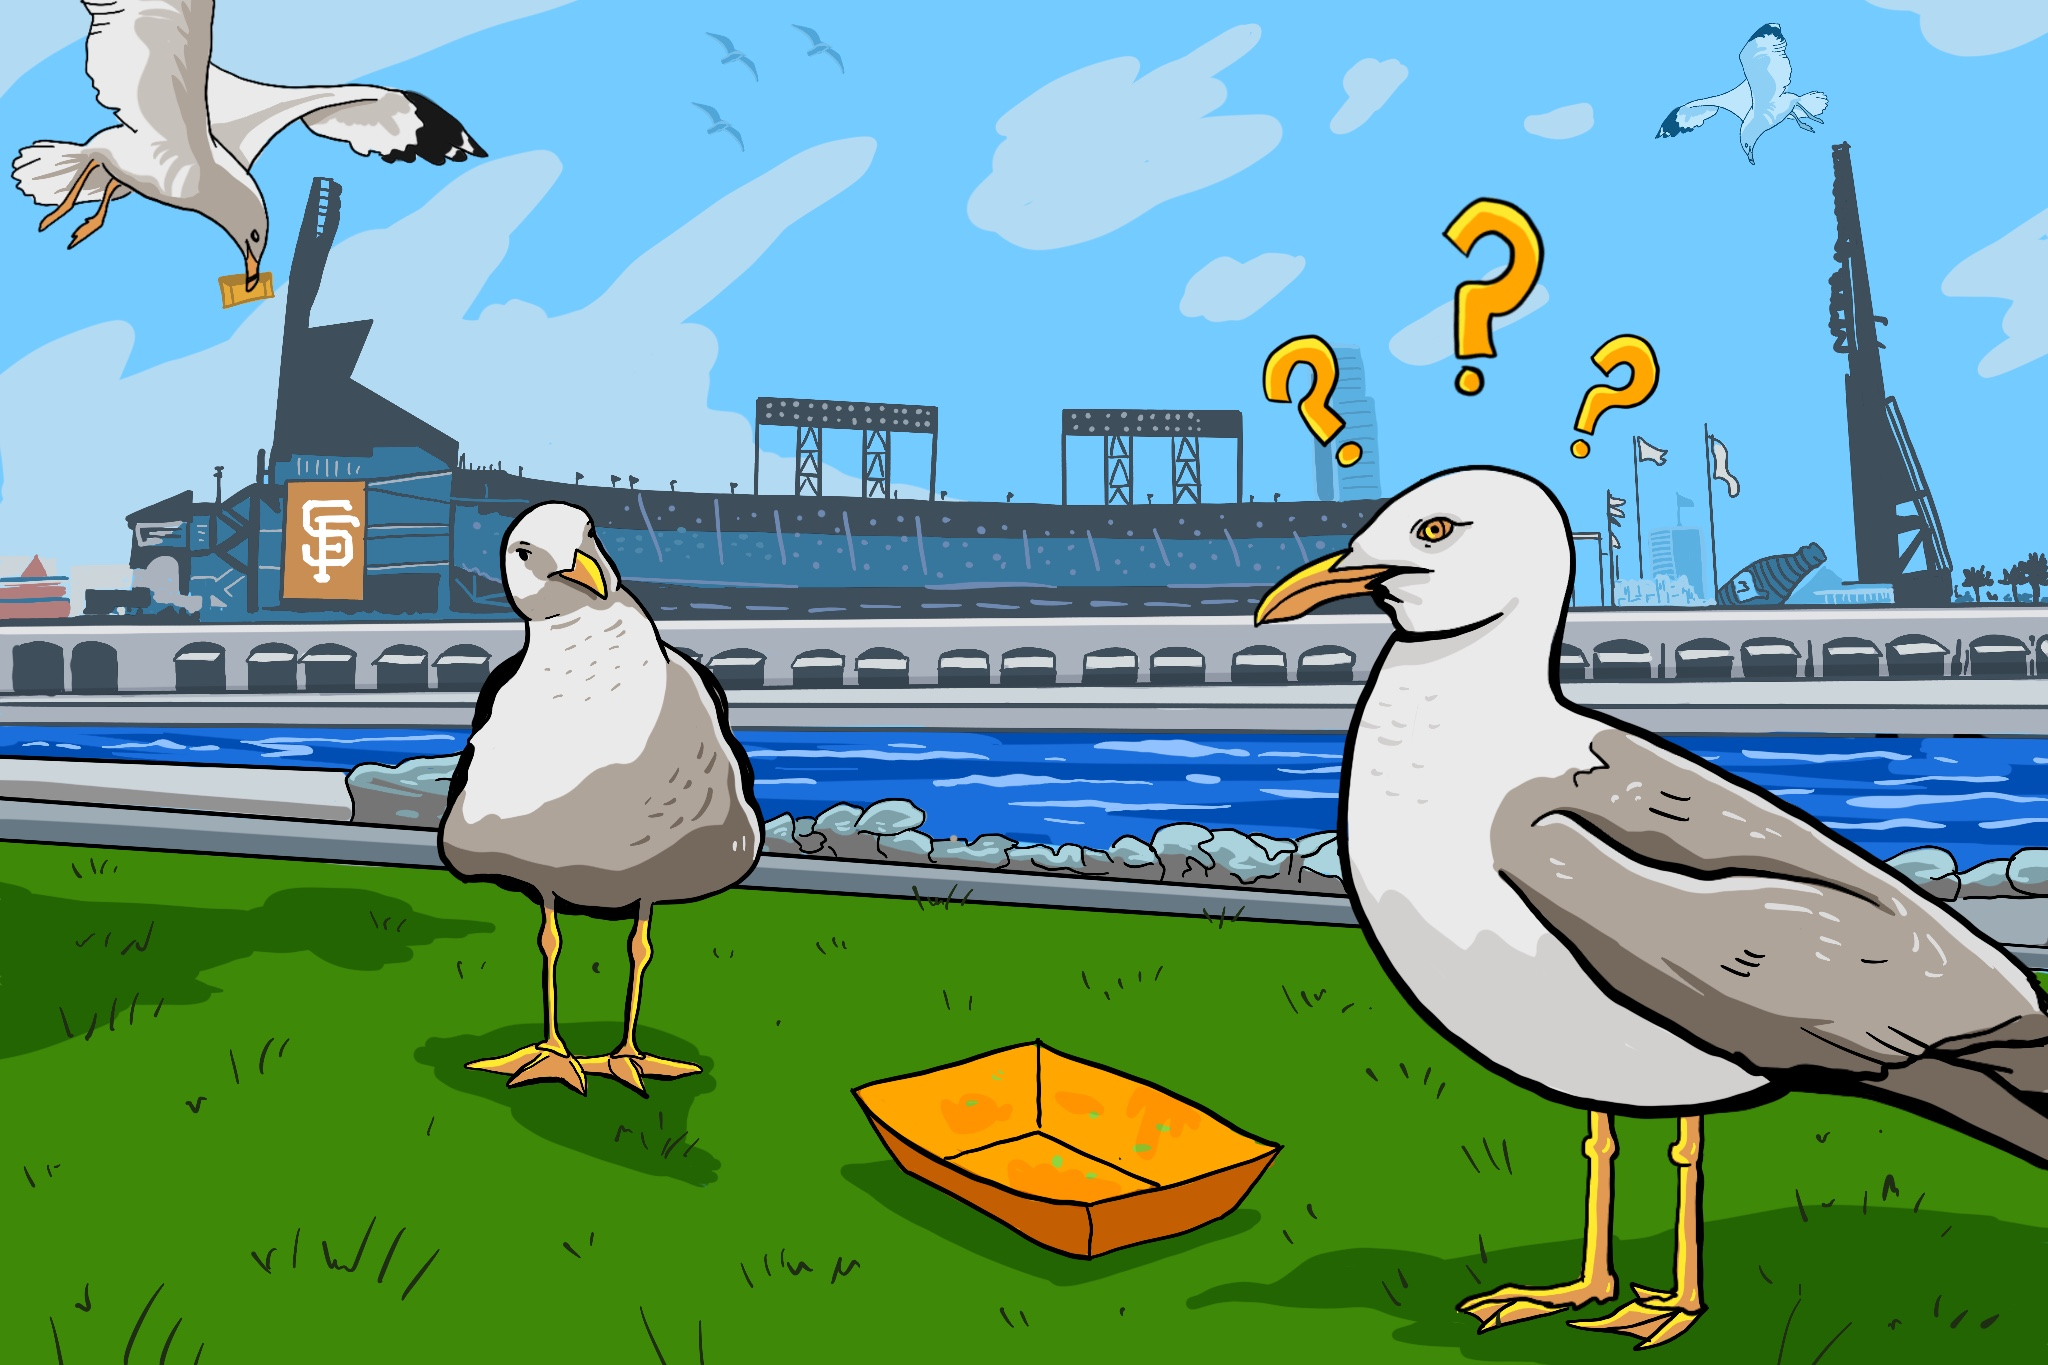 What's a seagull to do without Oracle Park garlic fries?